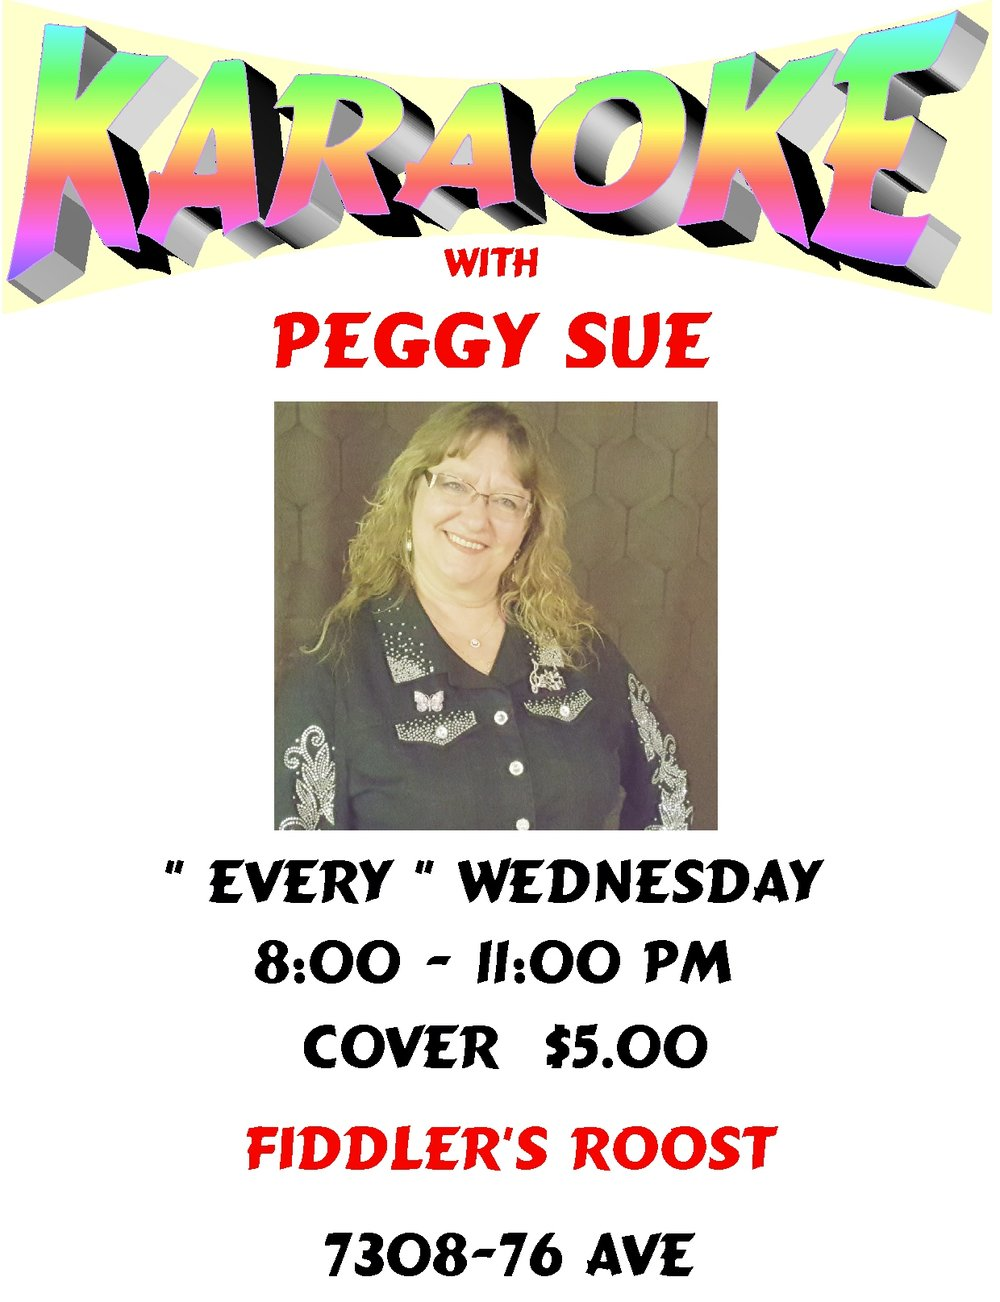 Karaoke Night with Peggy Sue